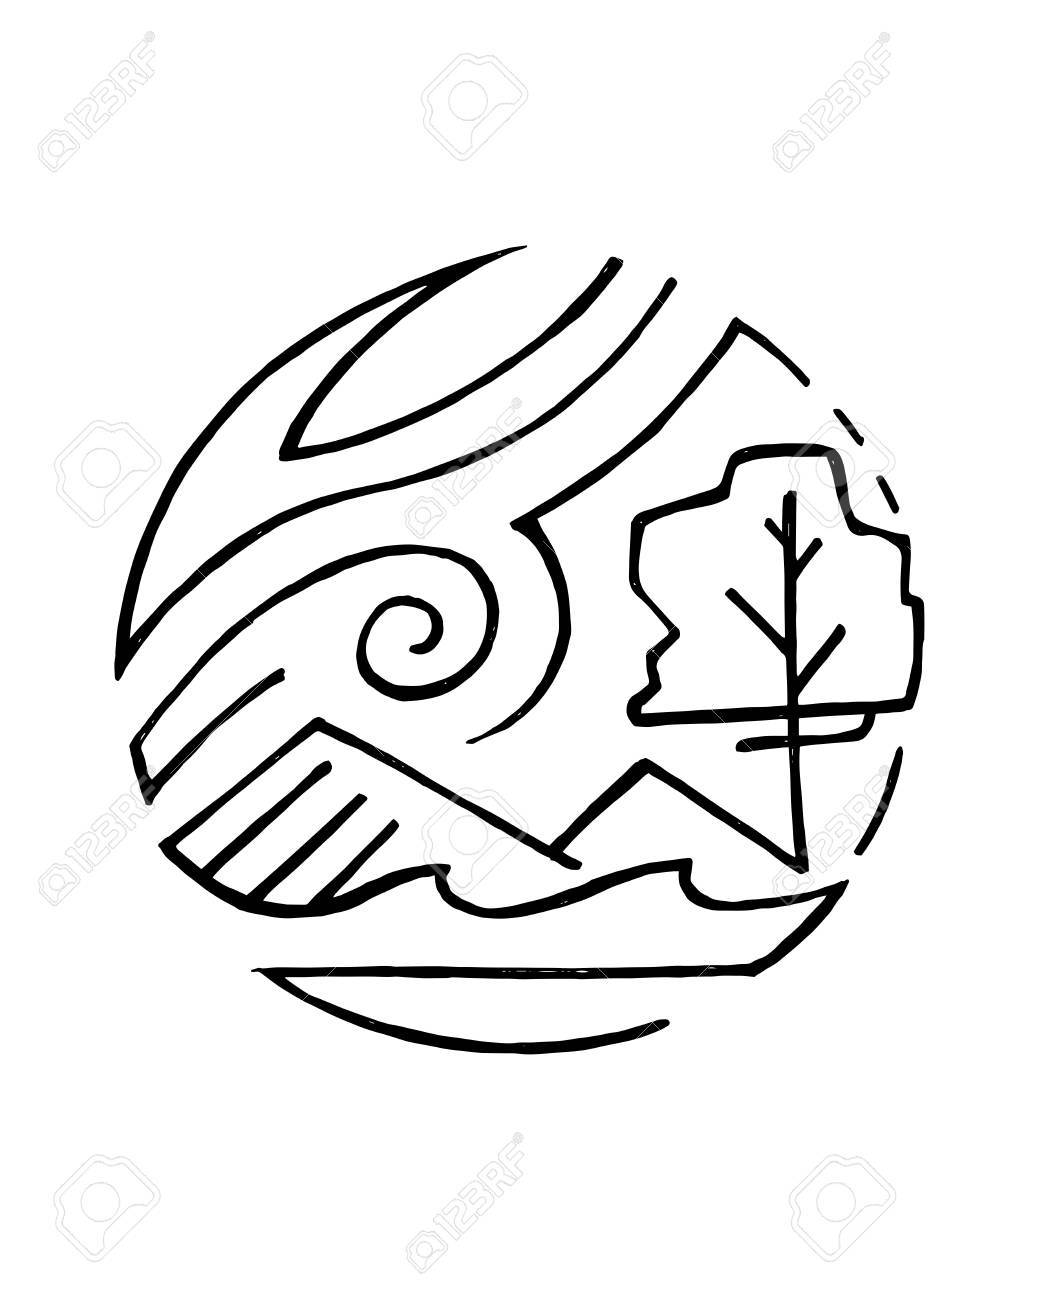 1039x1300 Hand Drawn Vector Illustration Or Drawing Of A Nature Symbol